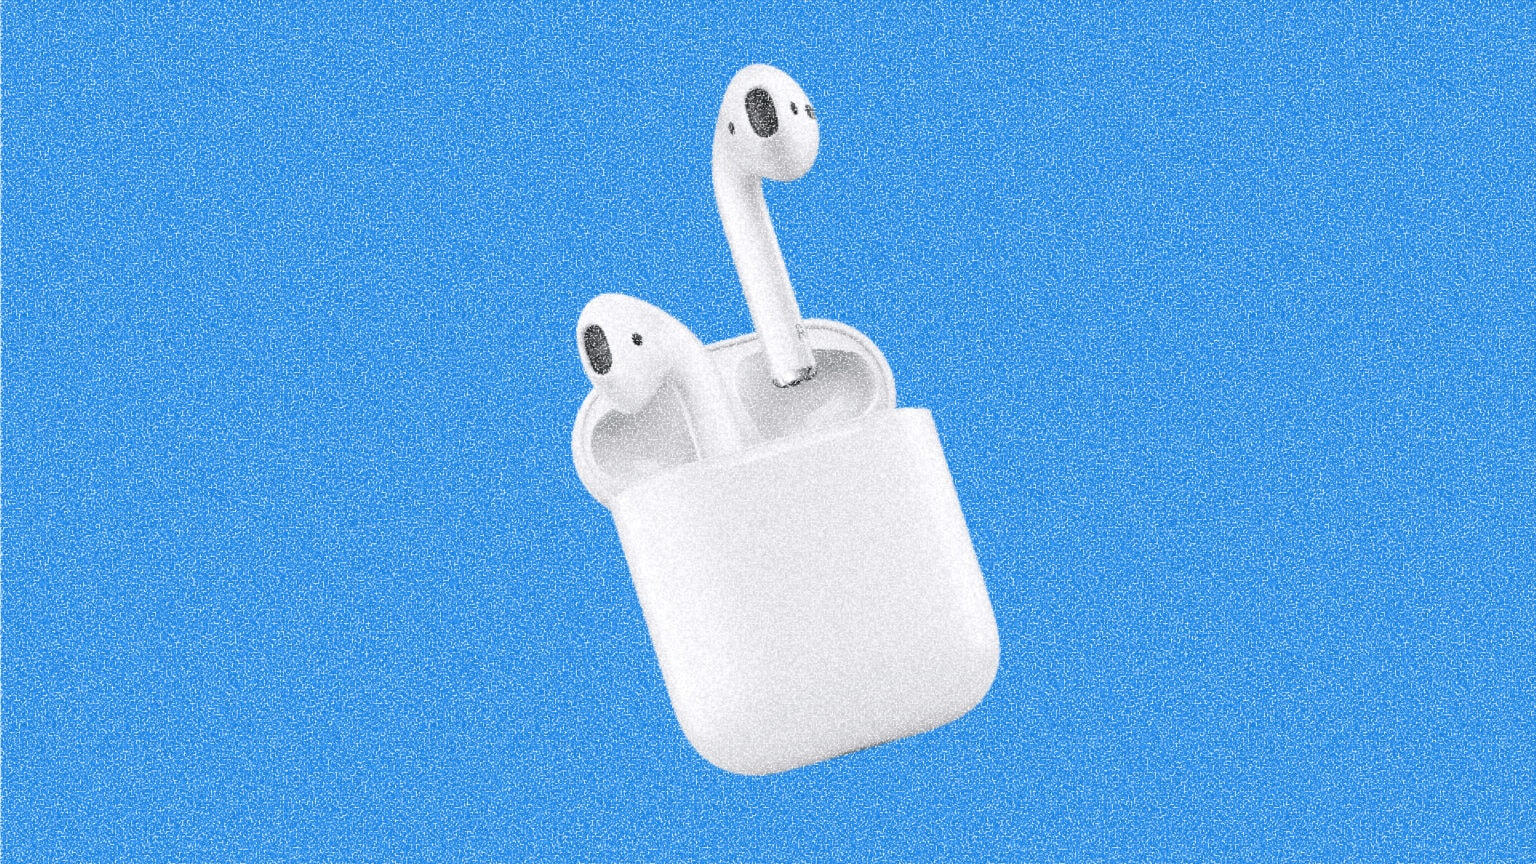 AirPods 3 refresh on the way